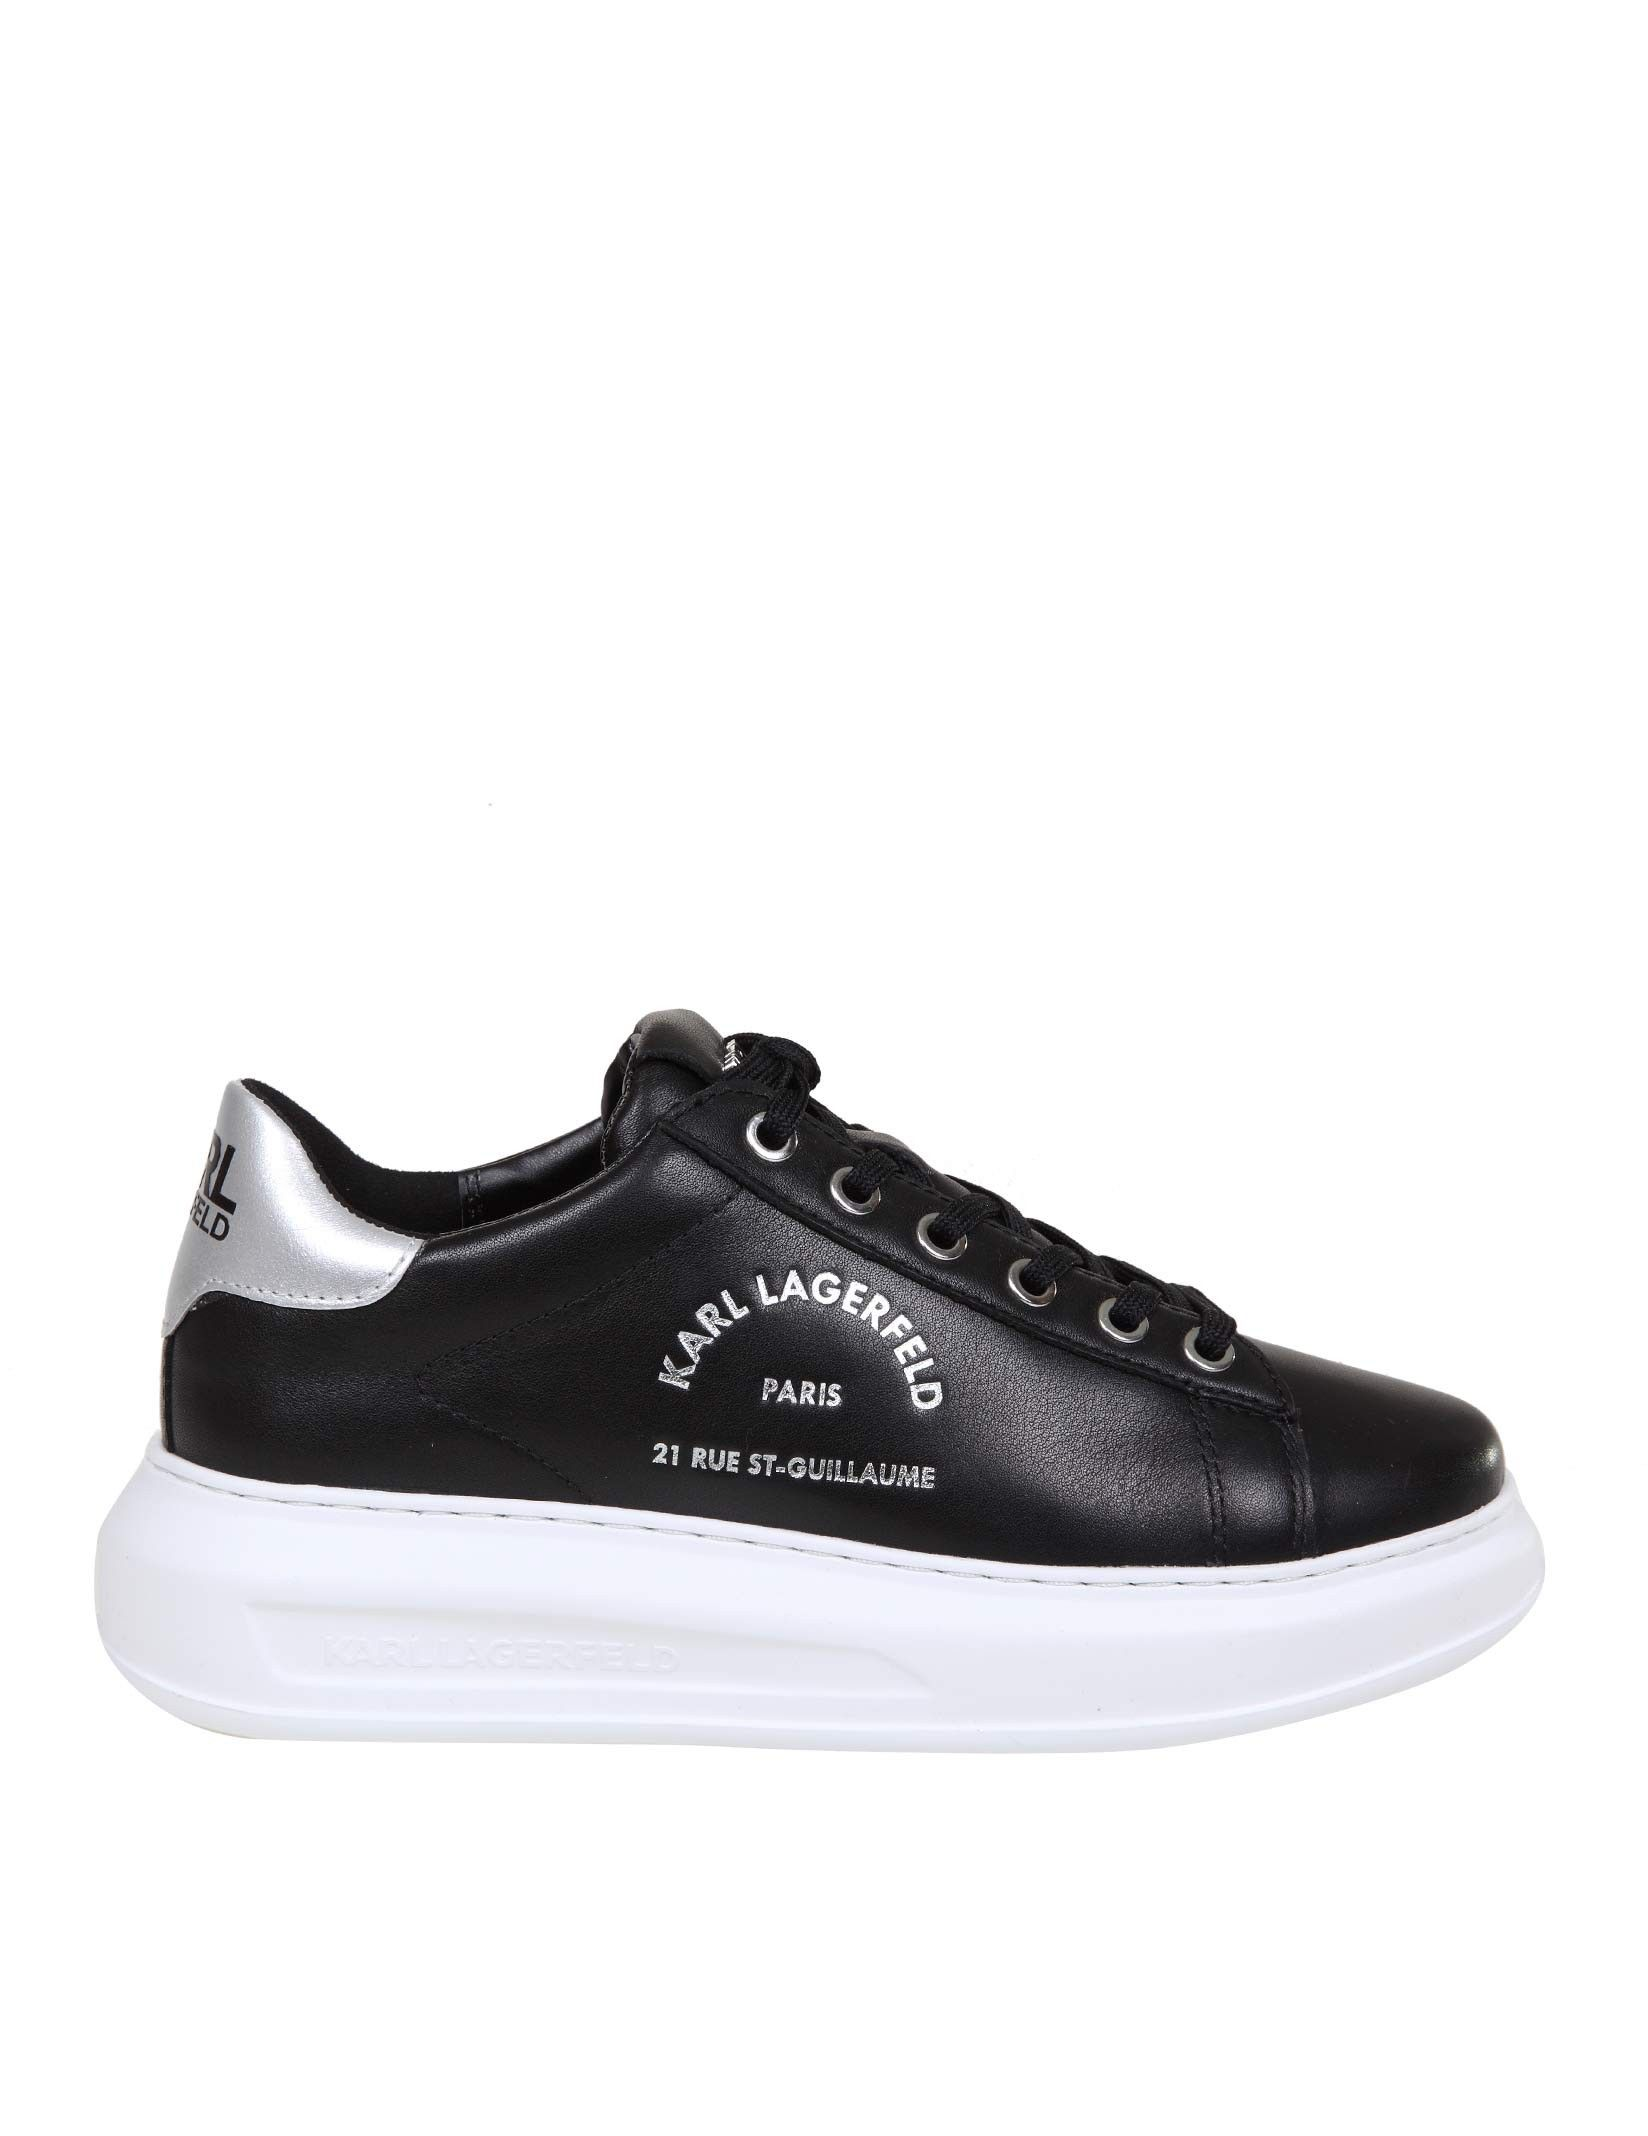 KARL LAGERFELD KARL LAGERFELD WOMEN'S BLACK LEATHER SNEAKERS